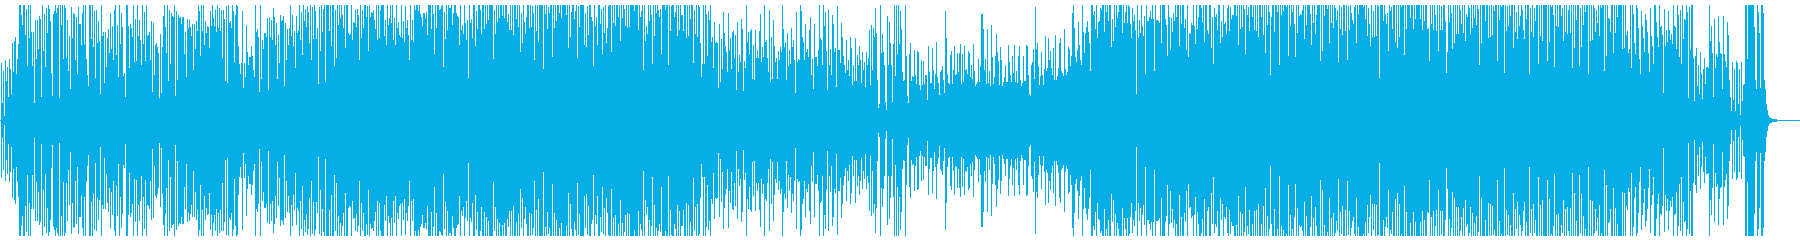 The cuteness of a boy who is crazy about what he likes's reproduced waveform